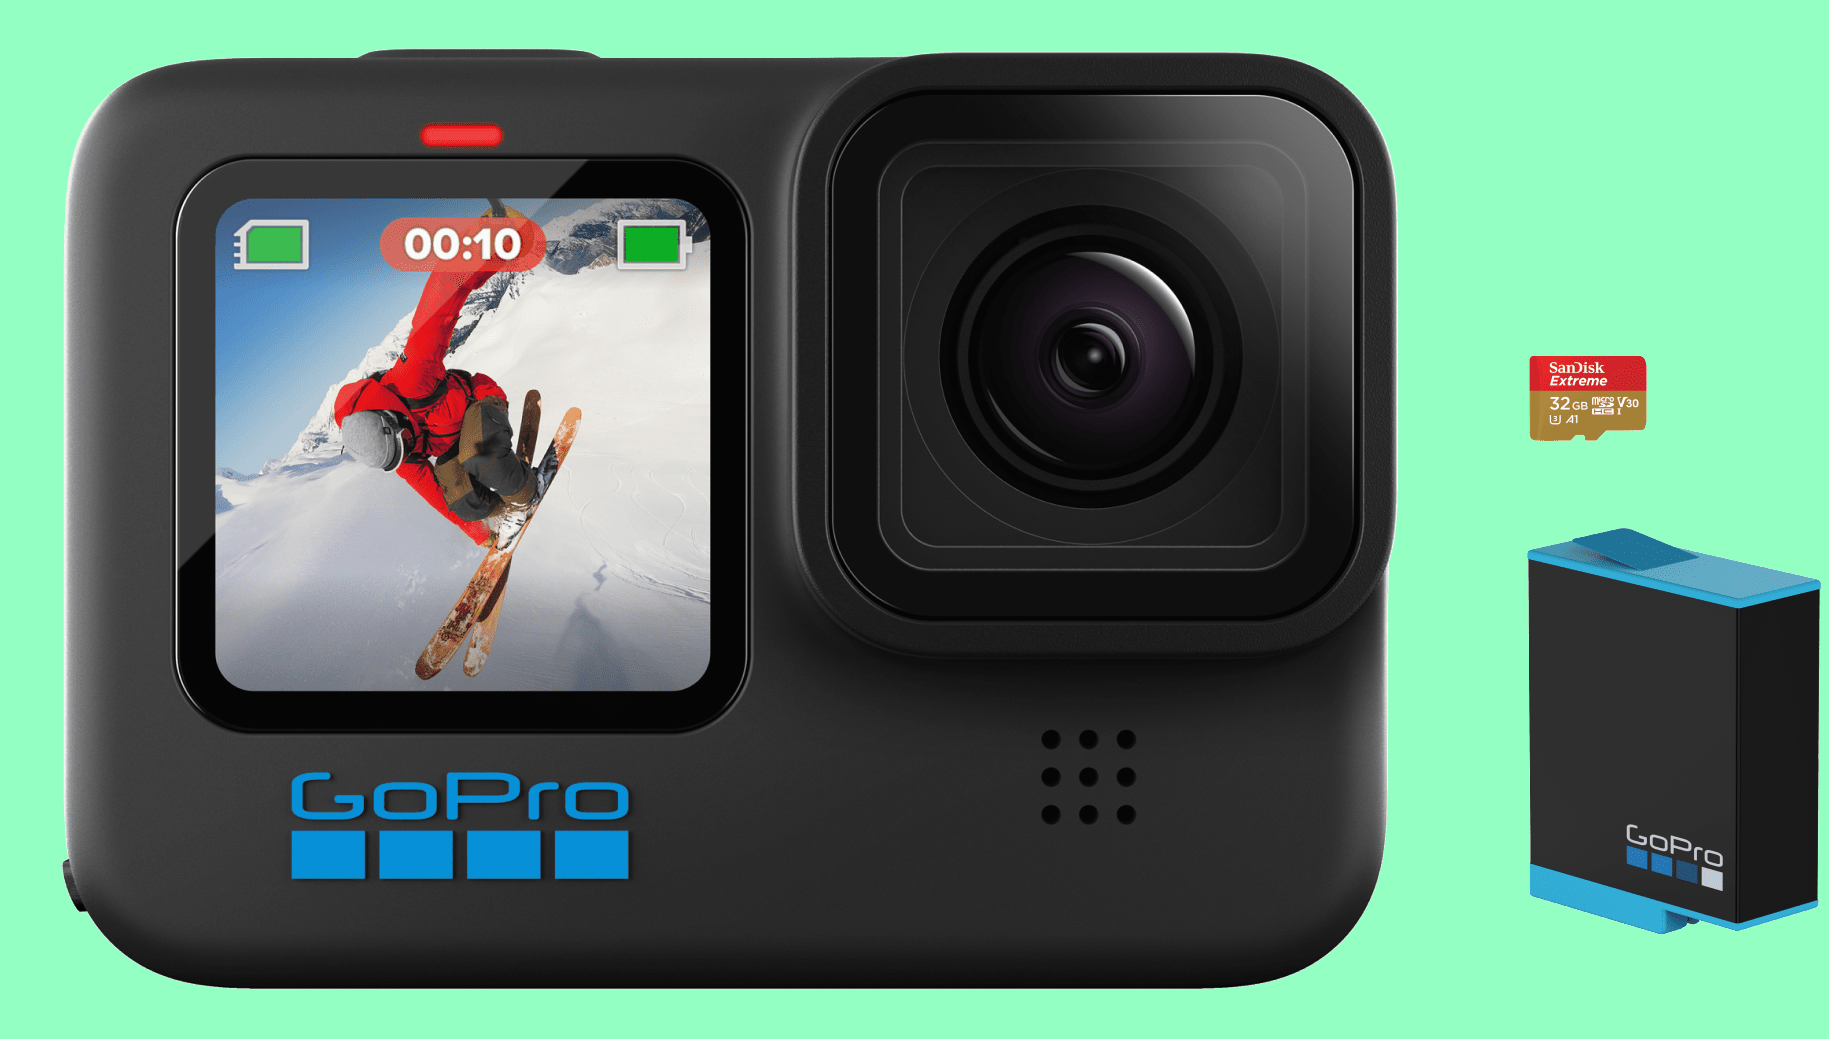 The new GoPro HERO10 Black front view